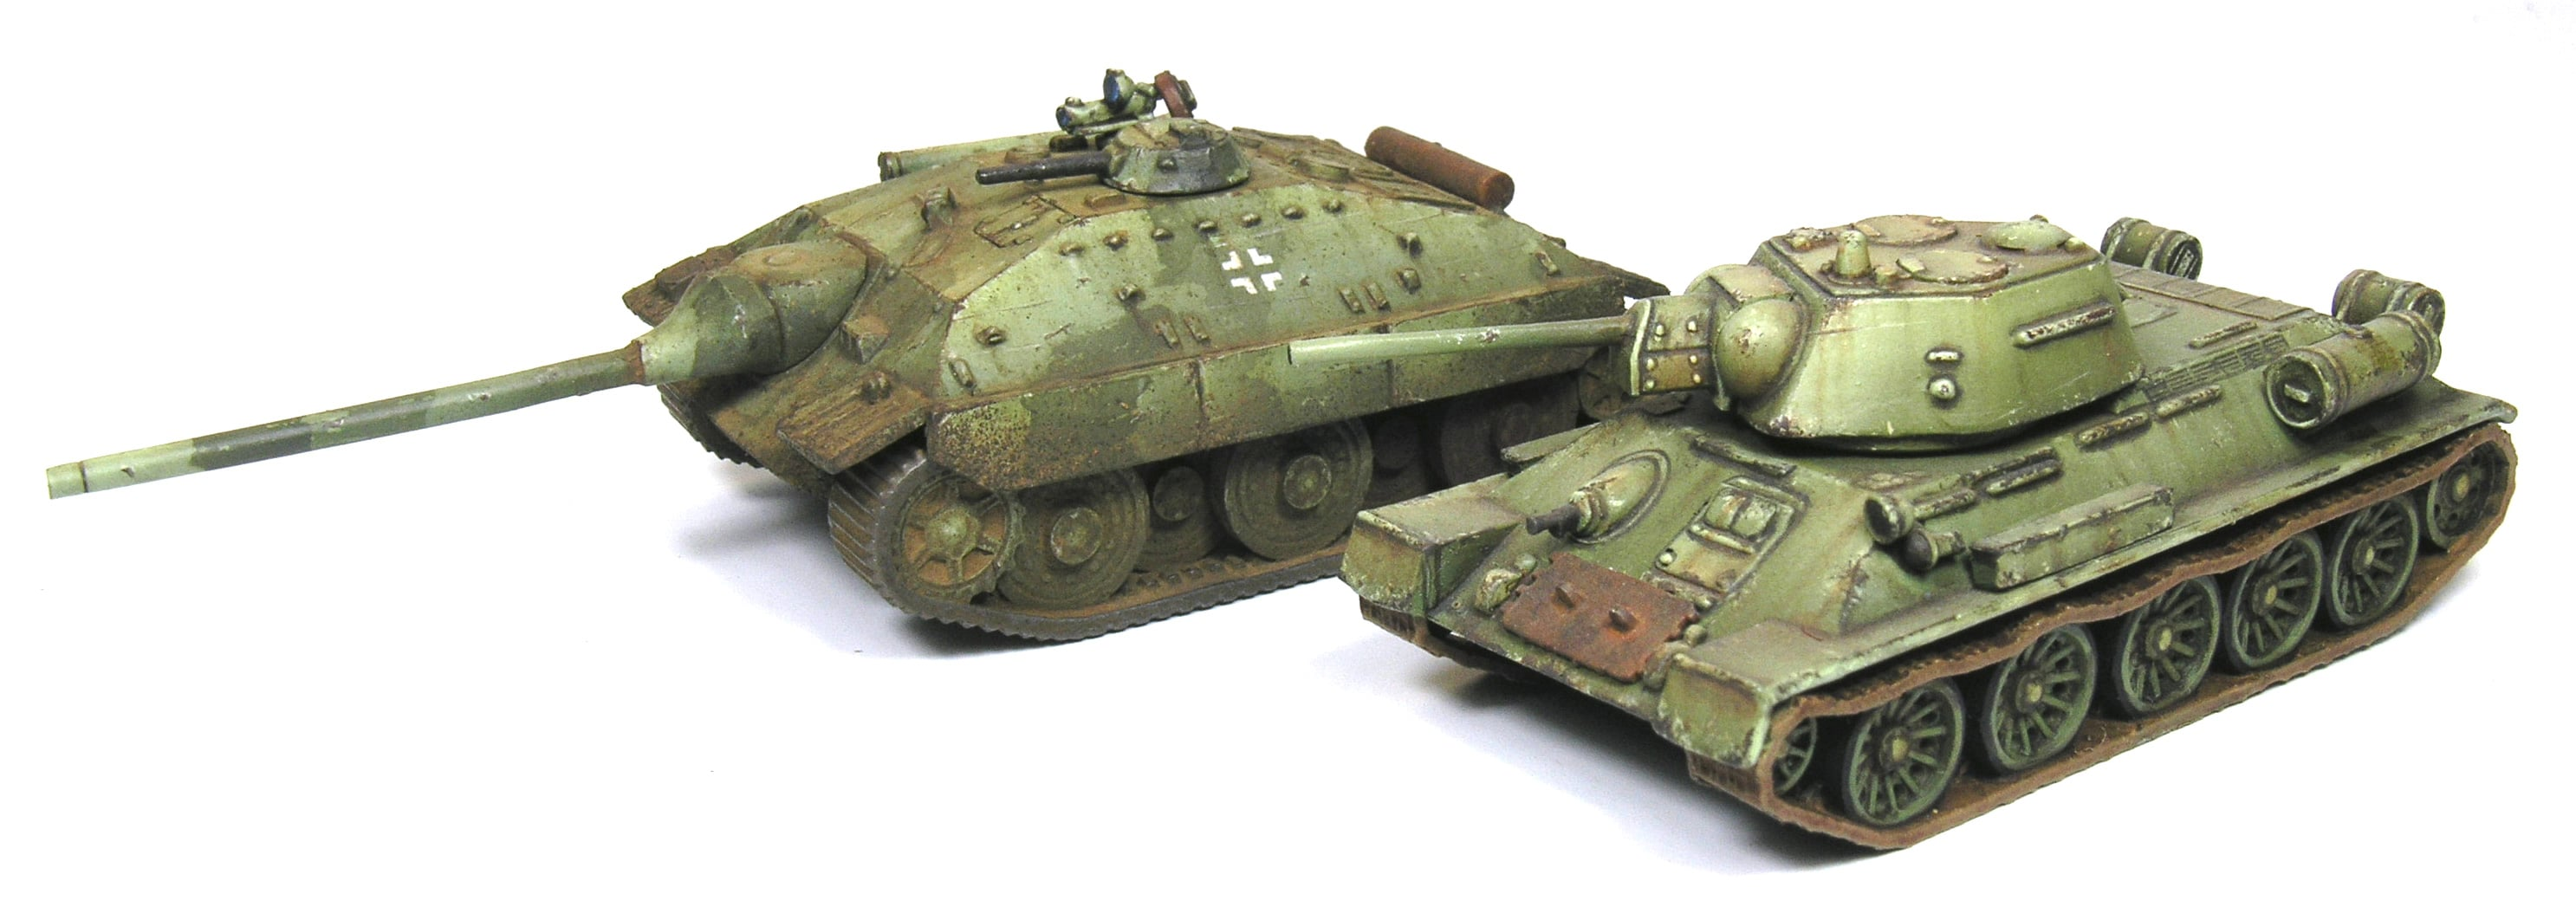 Pintando tanques en 15mm: tanque E25 - Painting 15mm tanks: E25 tank